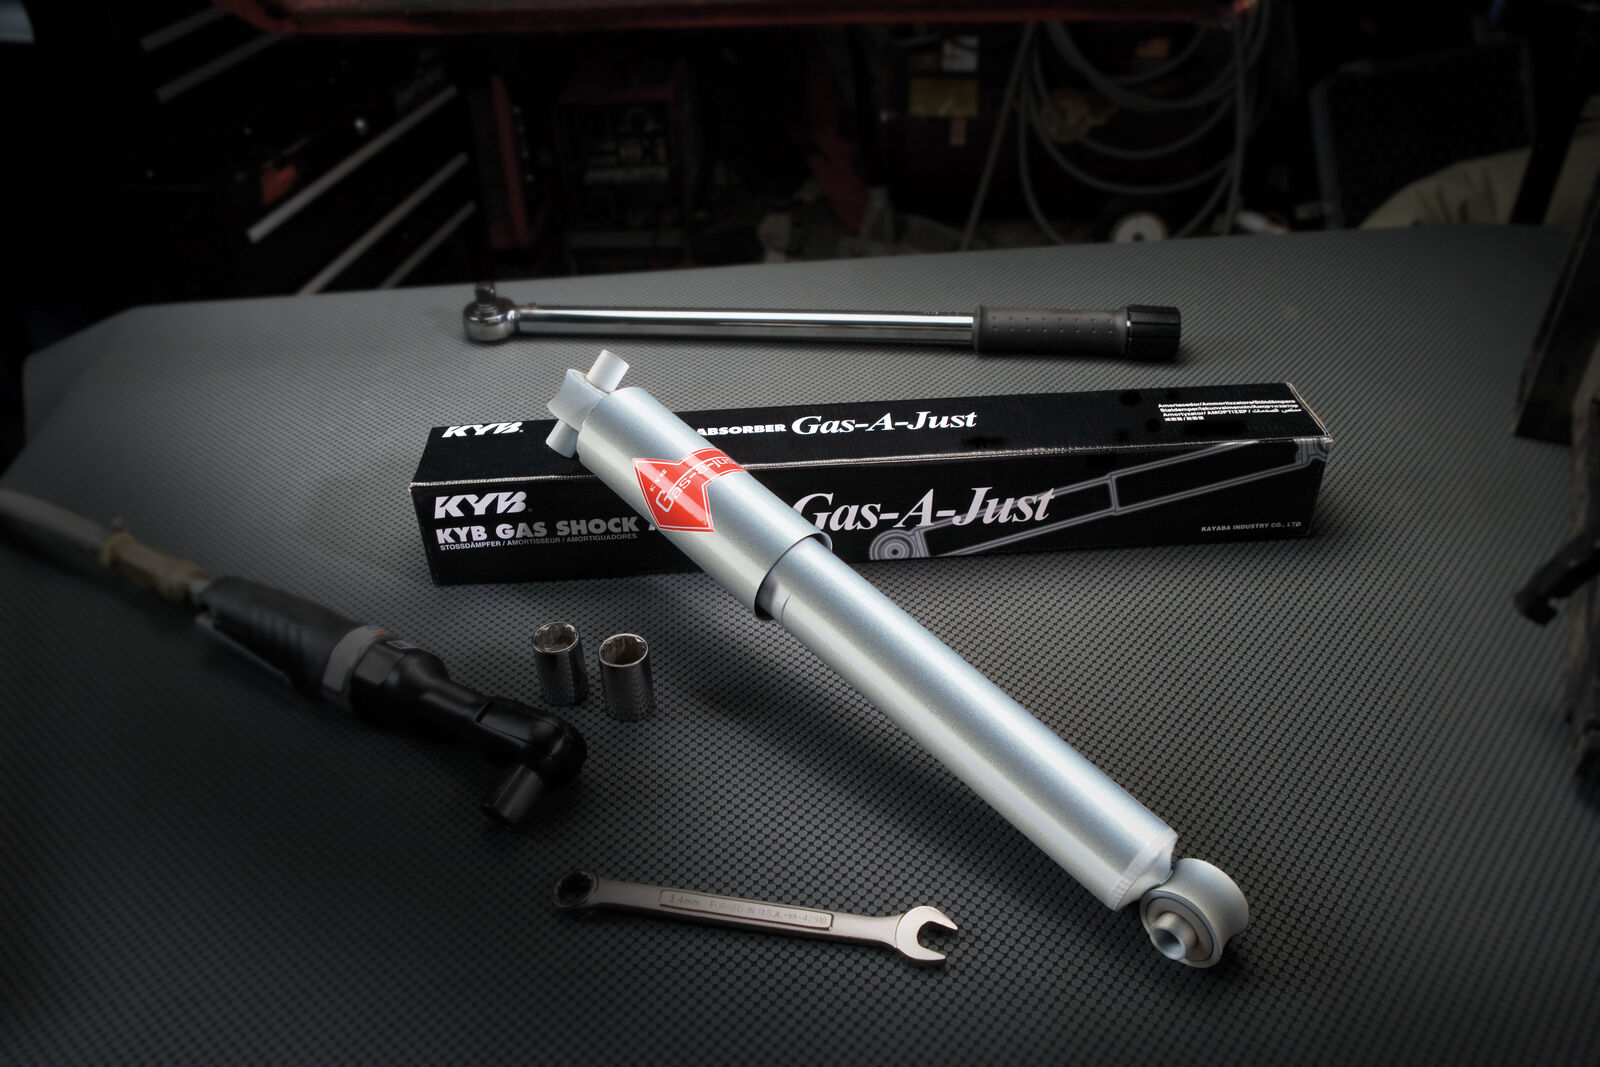 KYB KG5615 Gas-a-Just Gas Shock